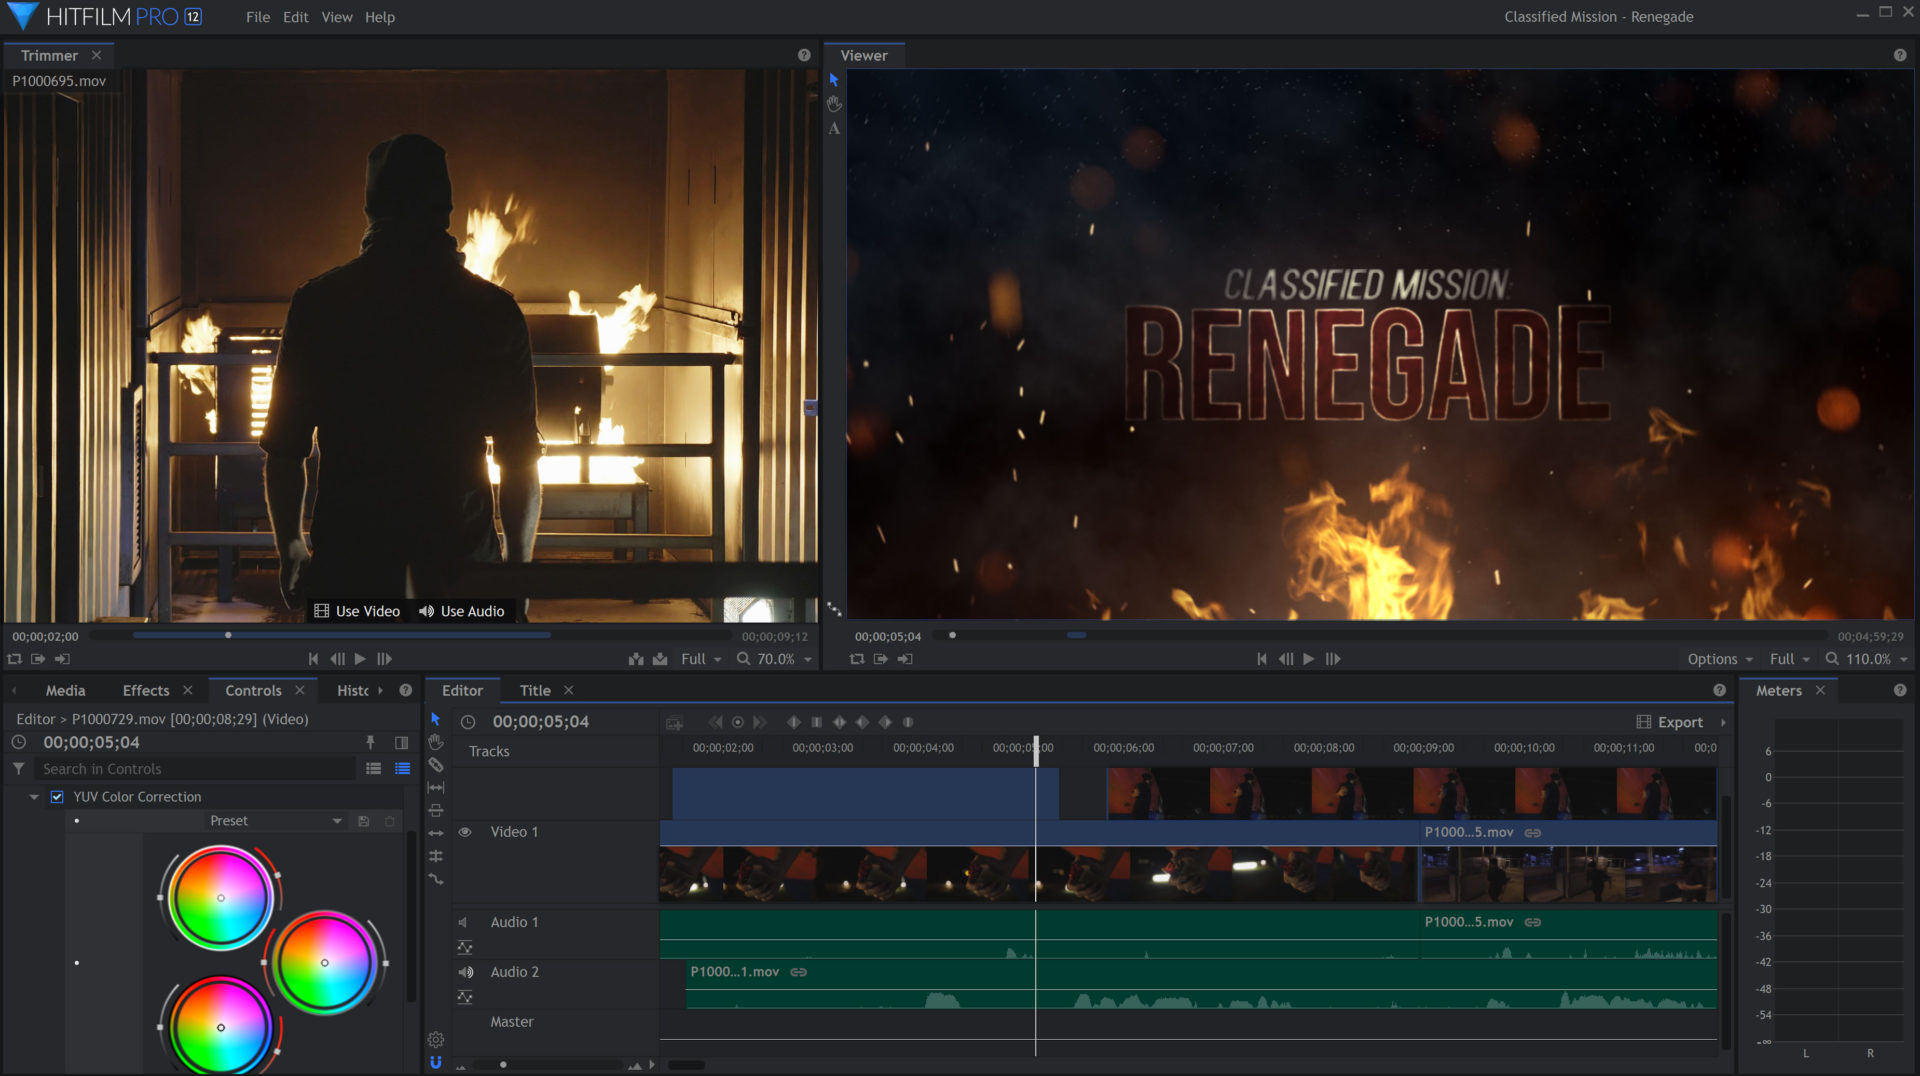 HitFilm Pro 12 Interface with 'Renegade' action movie title sequence and color correction wheels